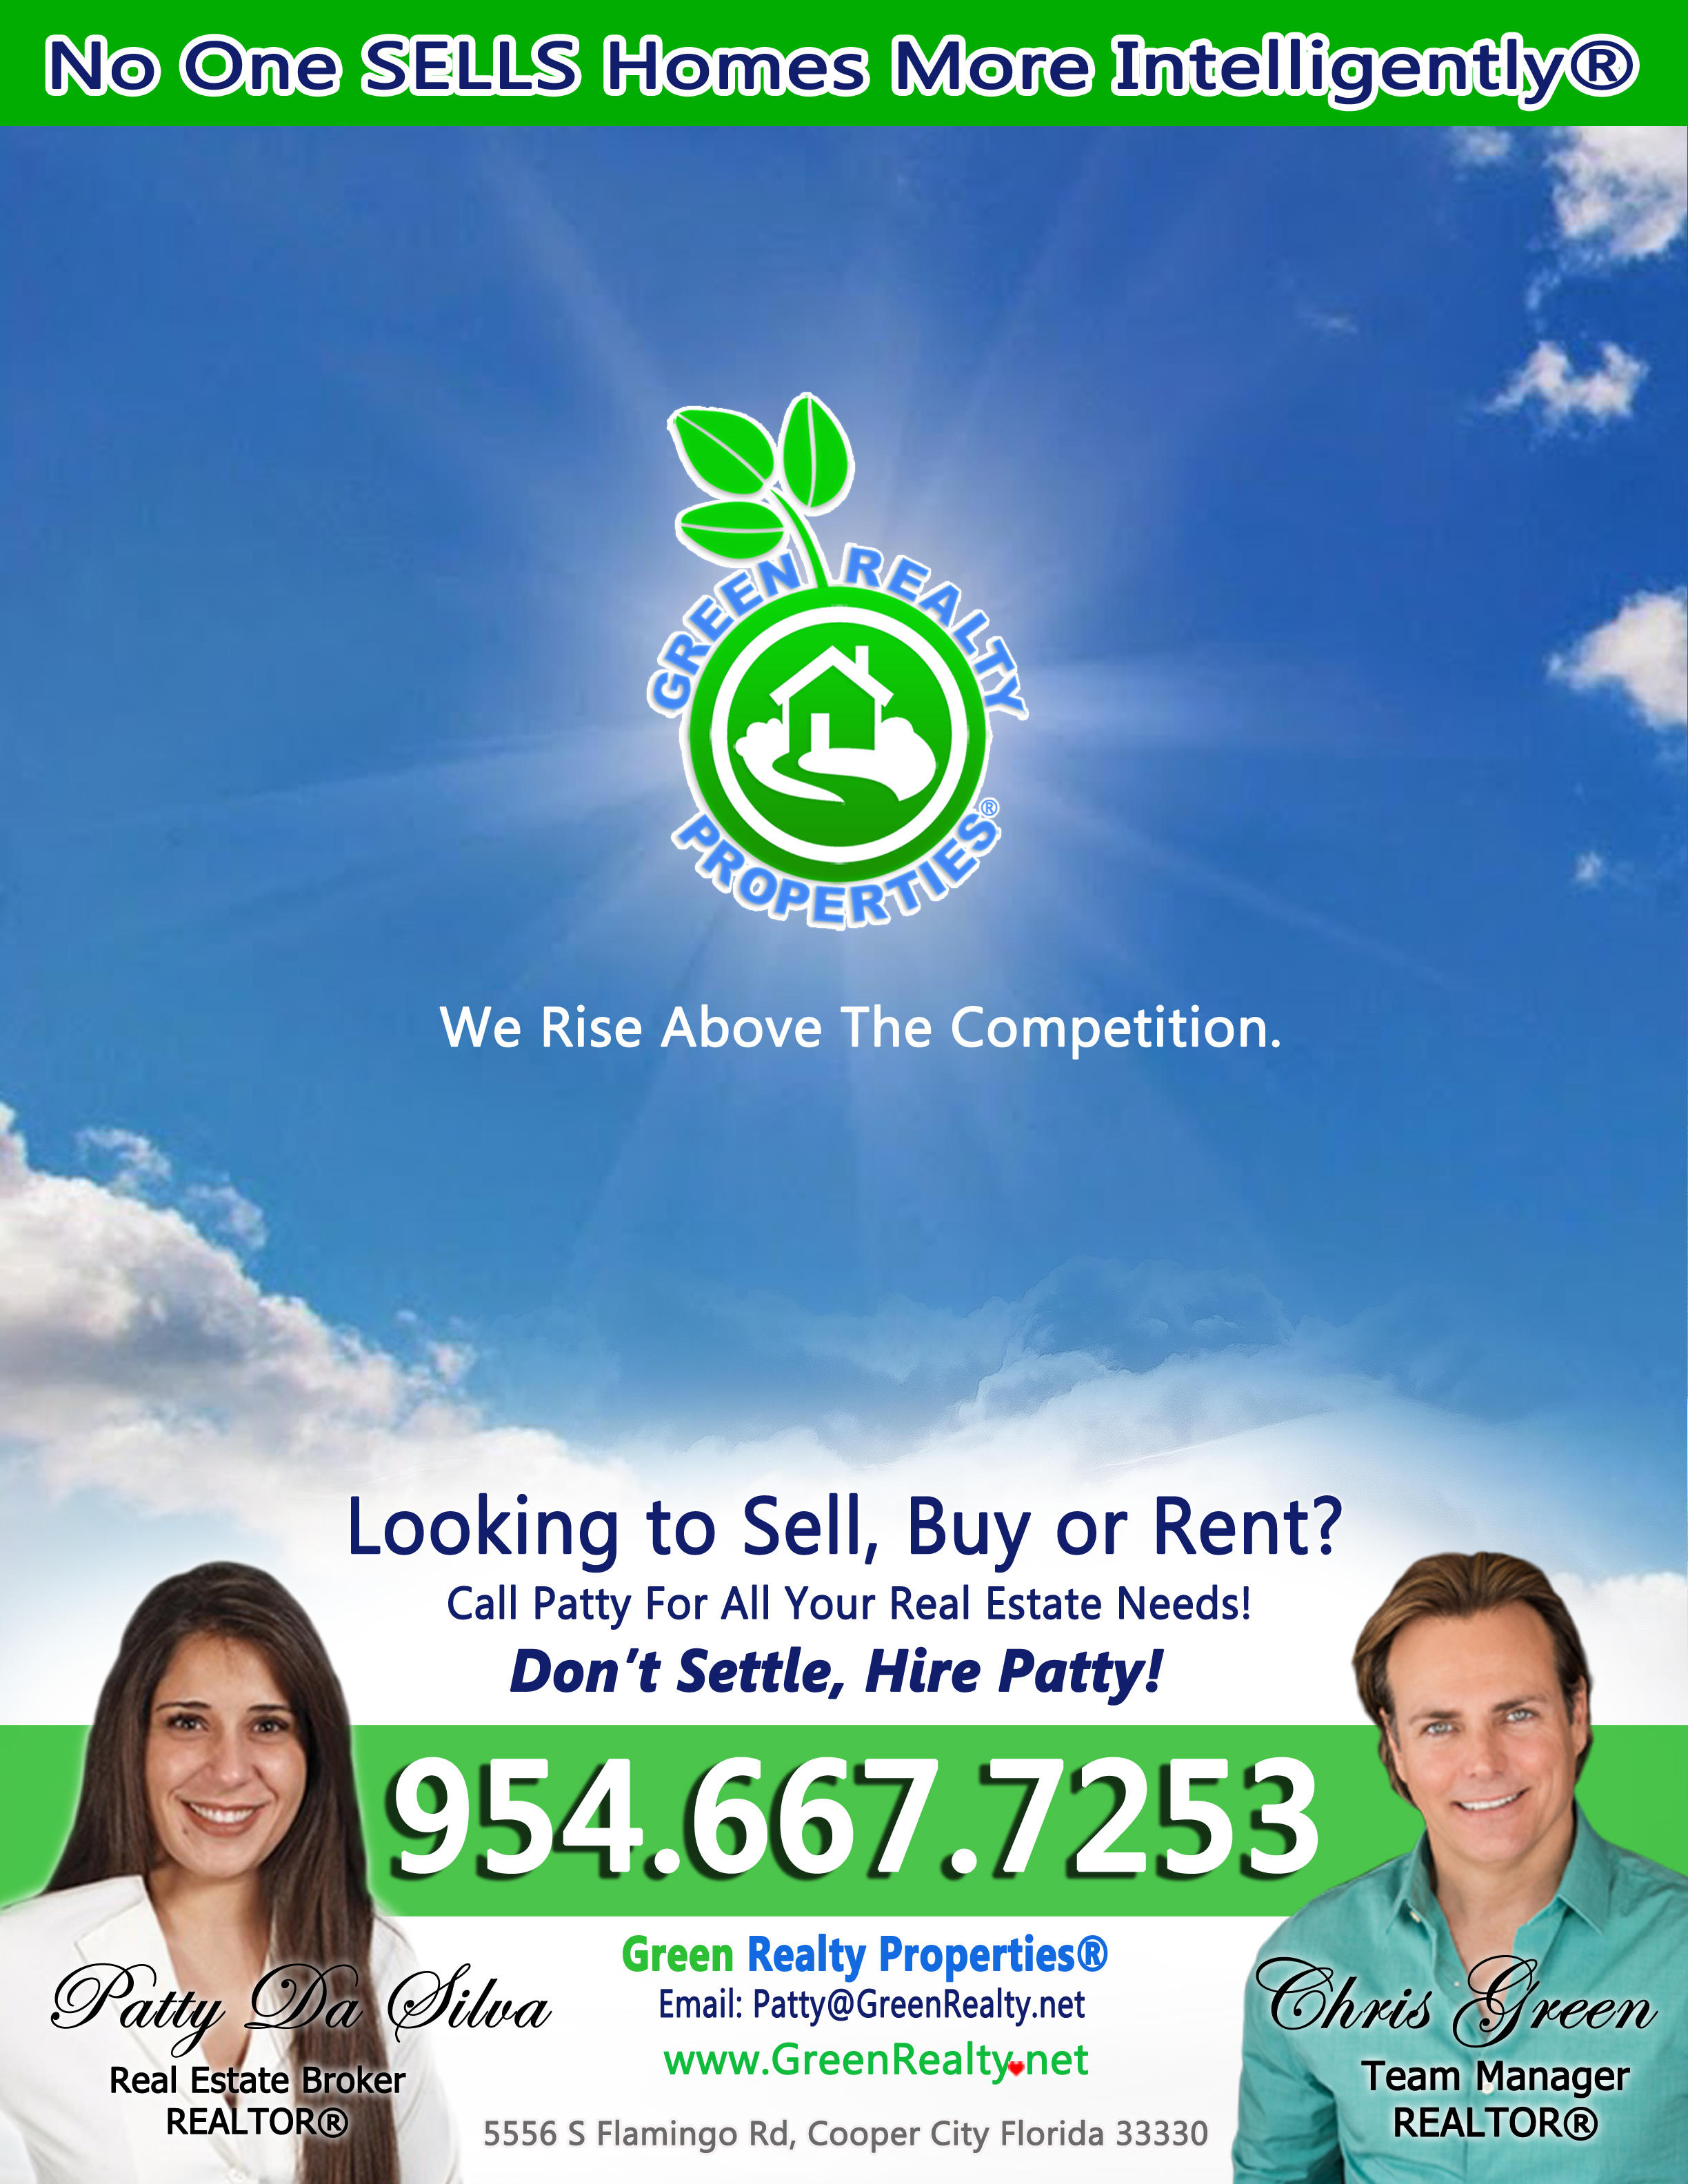 Patty Da Silva SELLS Homes - Green Realty Properties